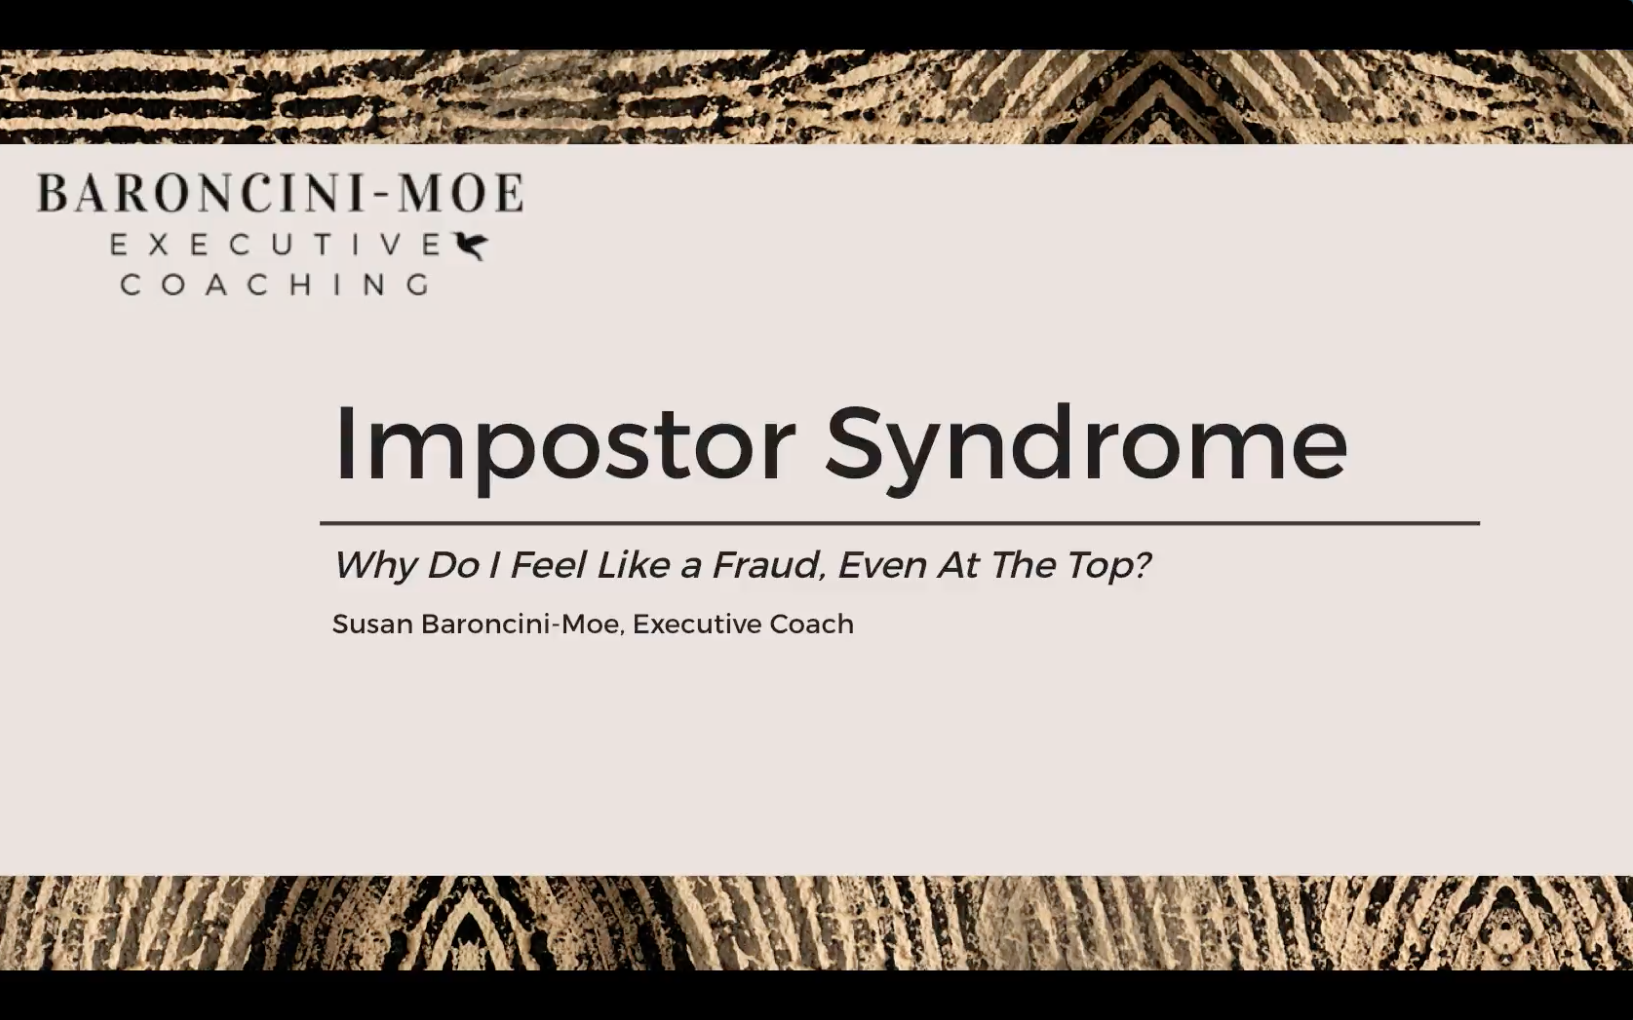 Impostor Syndrome: Why Do I Feel Like A Fraud, Even At The Top?